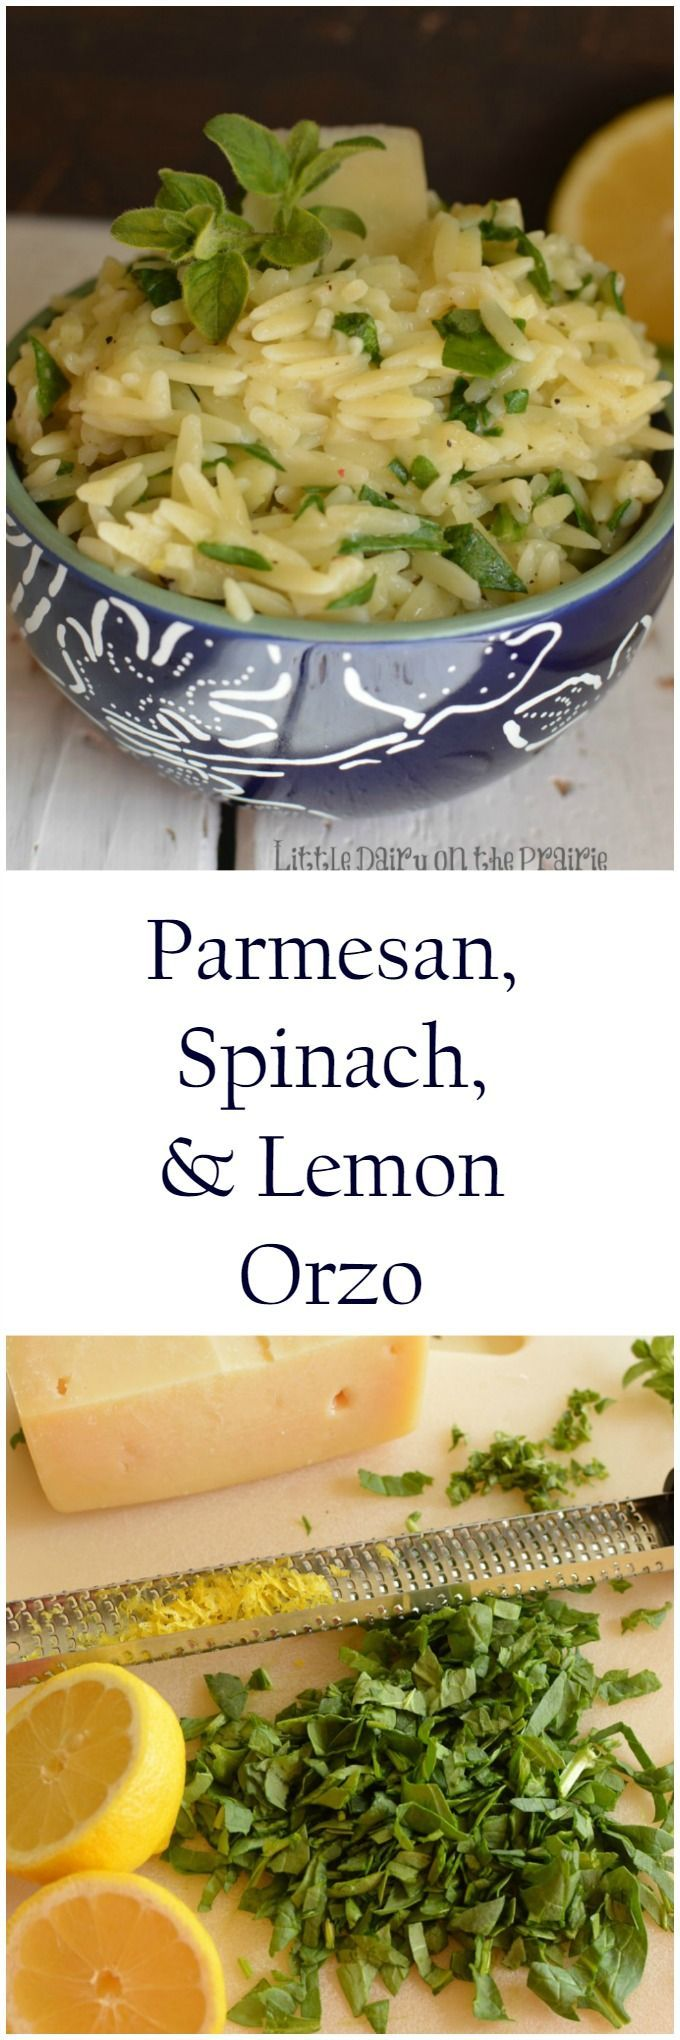 Parmesan, Spinach, and Orzo is a light and refreshing side dish your whole family will fall in love with!